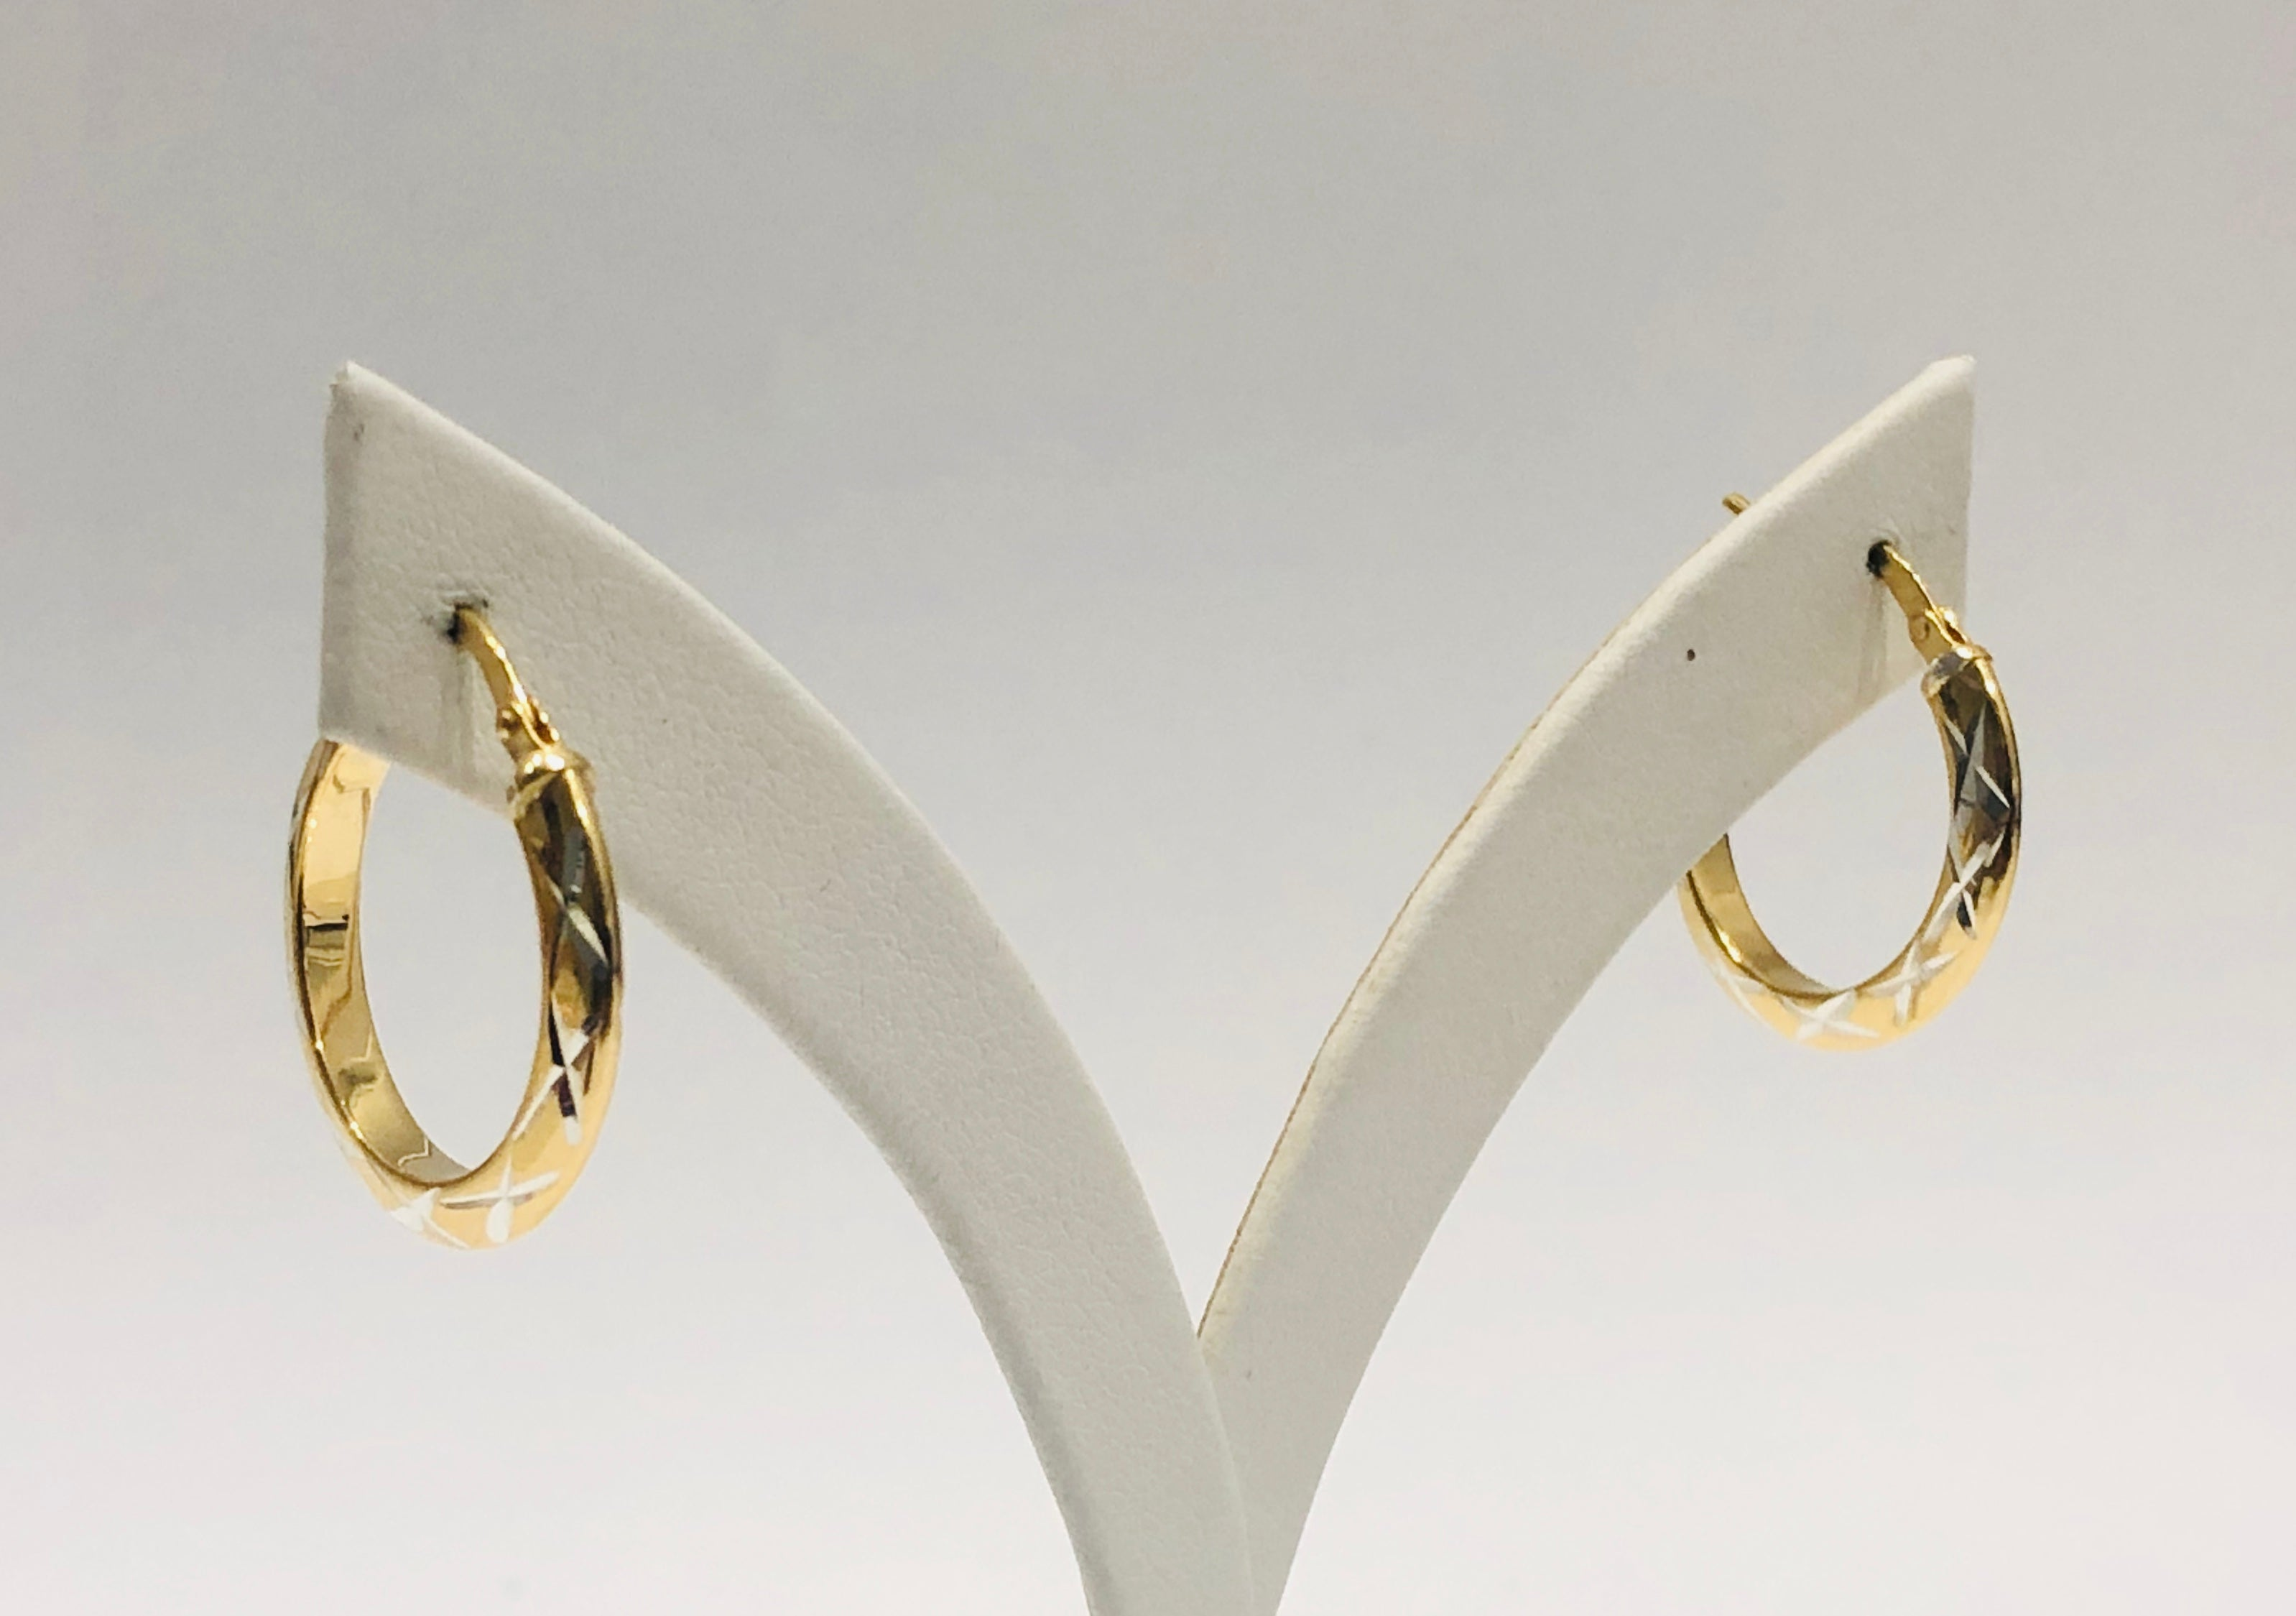 9ct Yellow Gold Silver Filled Two Tone Diamond Cut 21mm Hoop Earrings